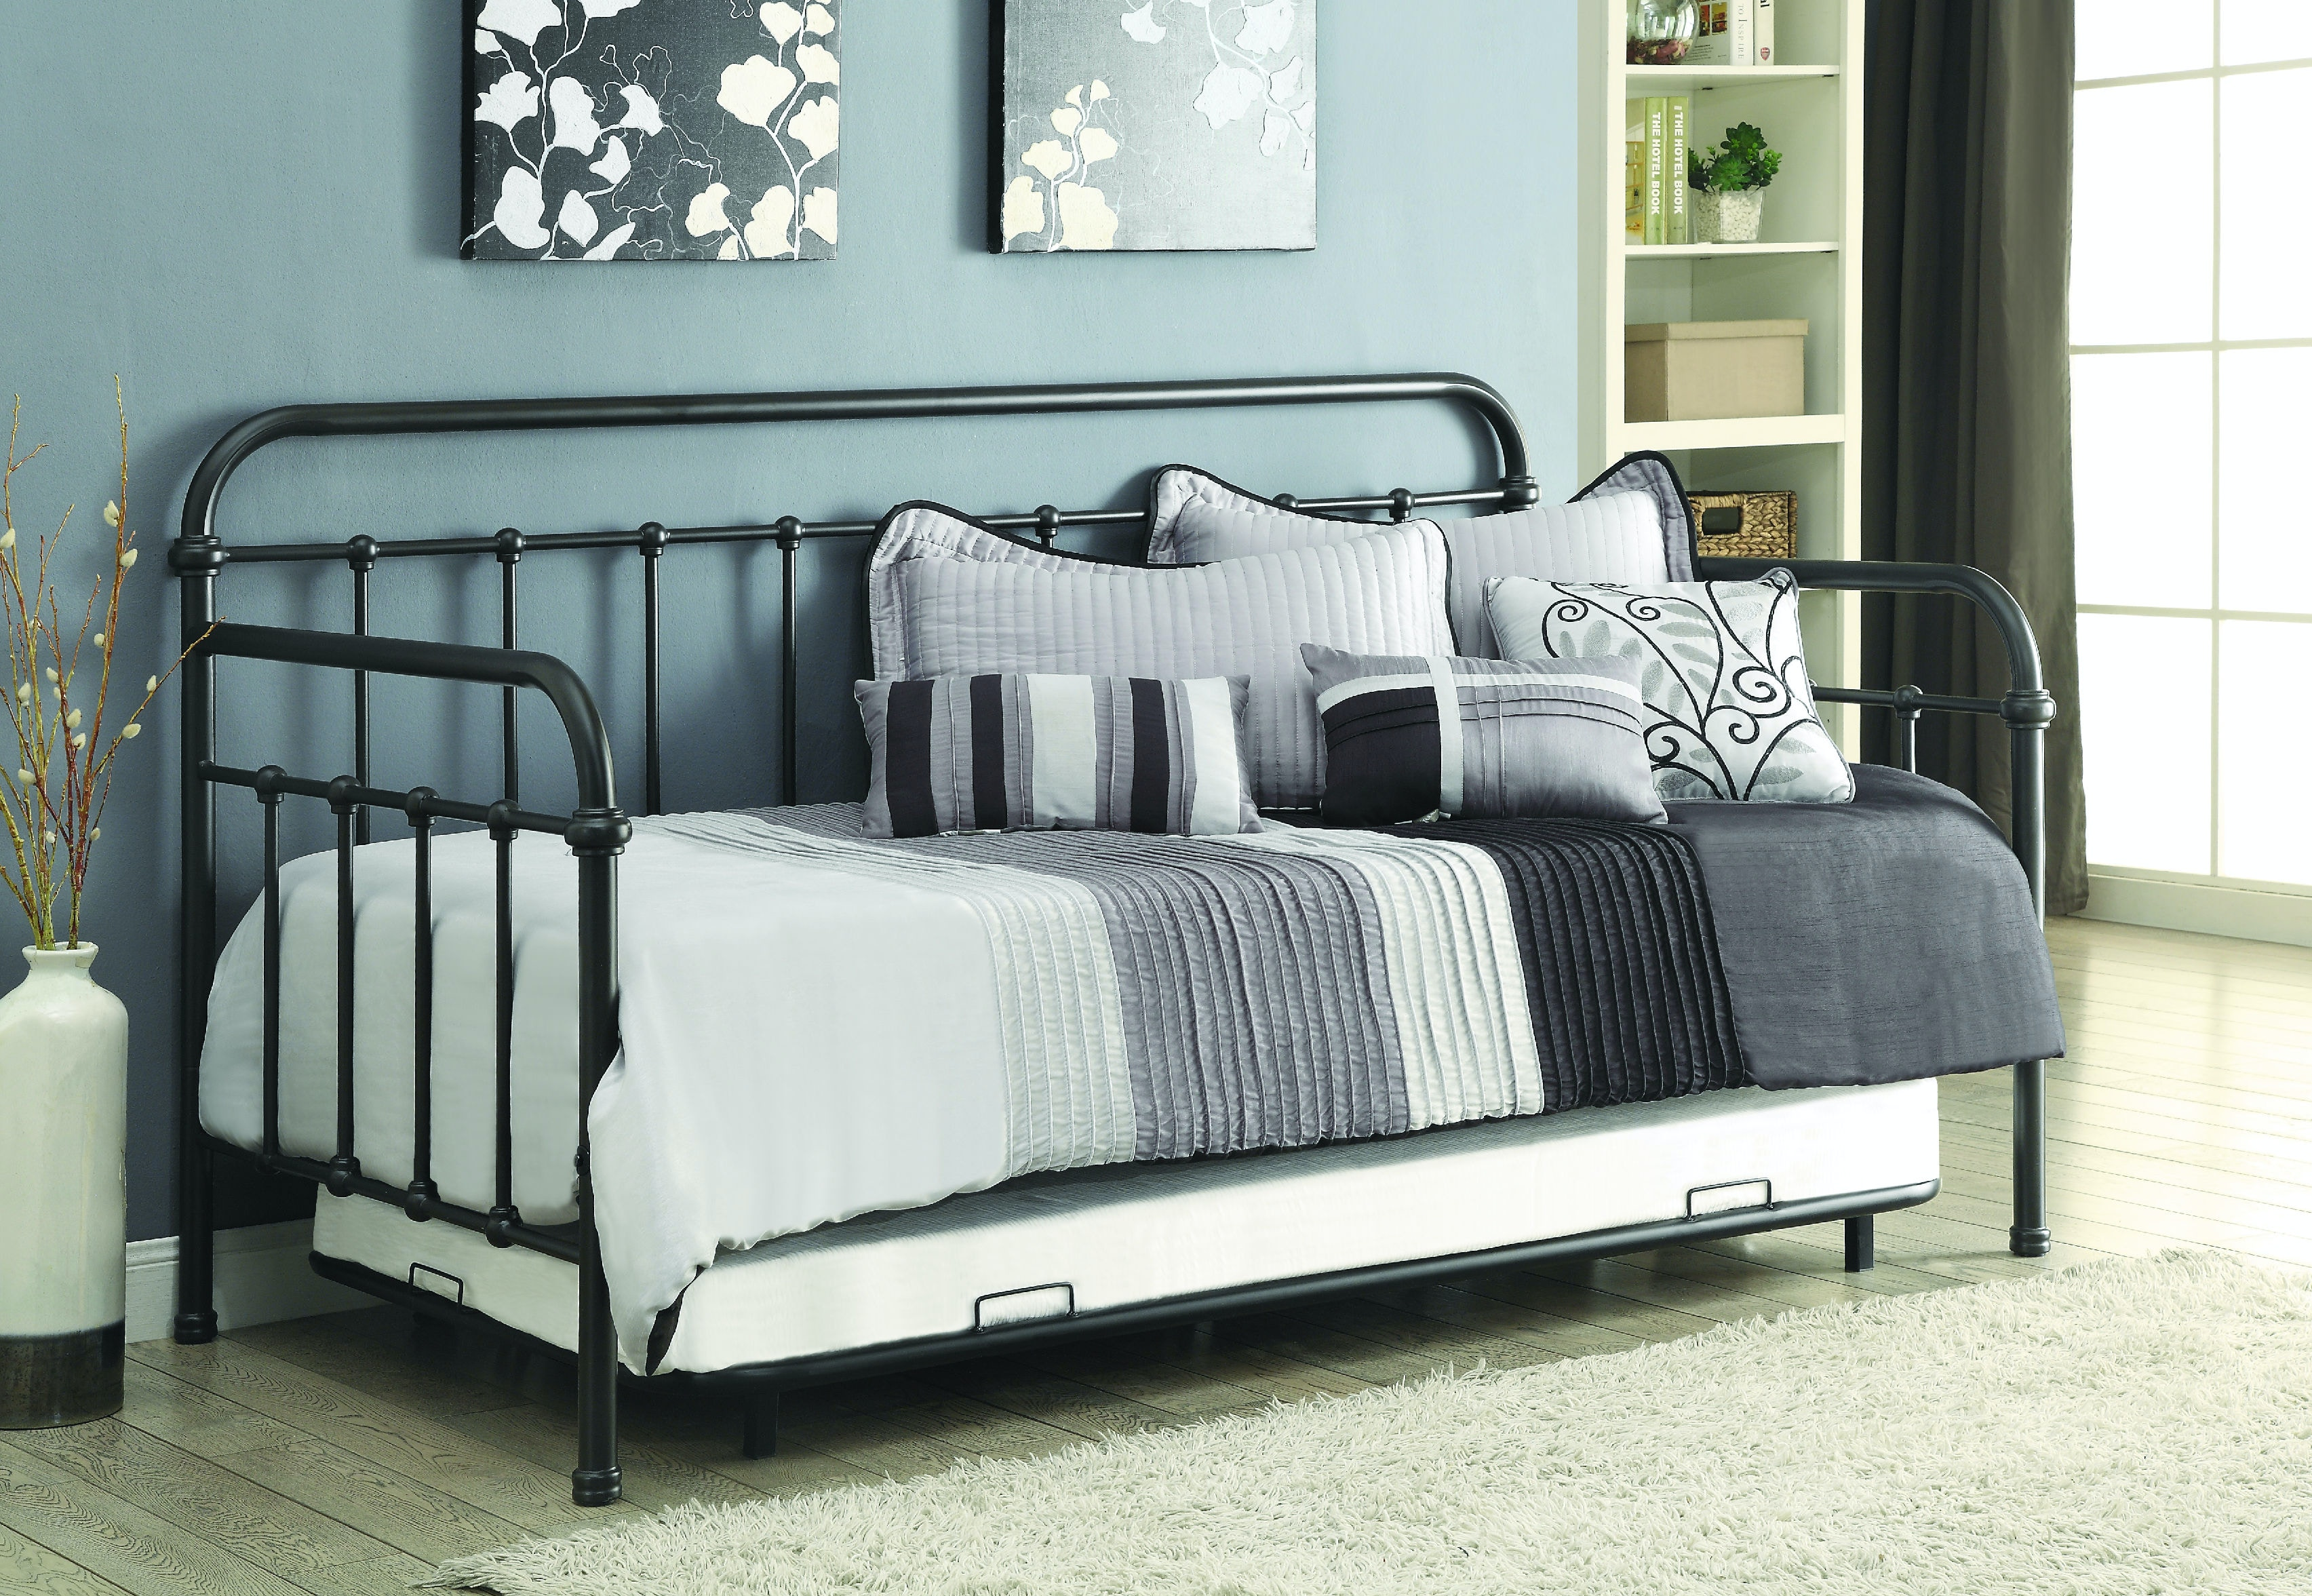 Coaster Bedroom DayBed 300398 At Siker Furniture